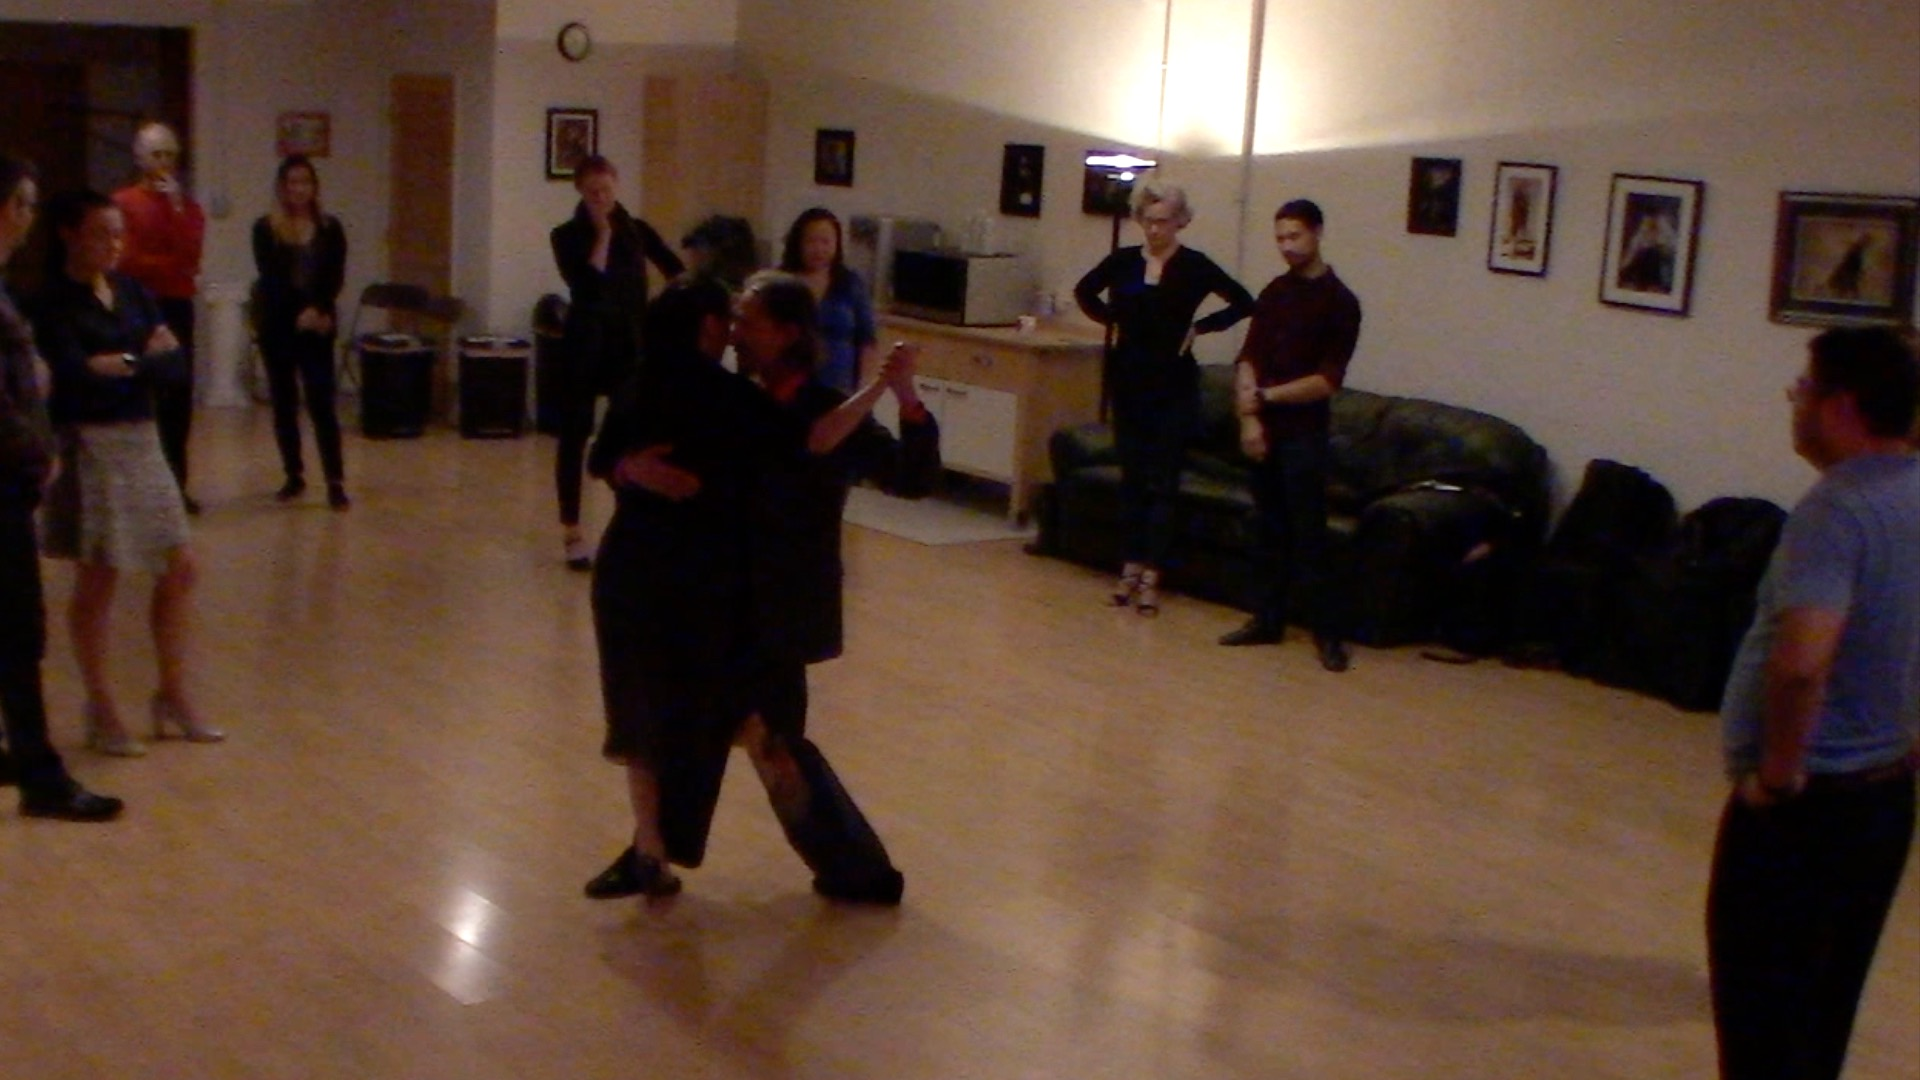 Argentine Tango dancing with Miranda at our beginner's class in San Francisco, October 2019